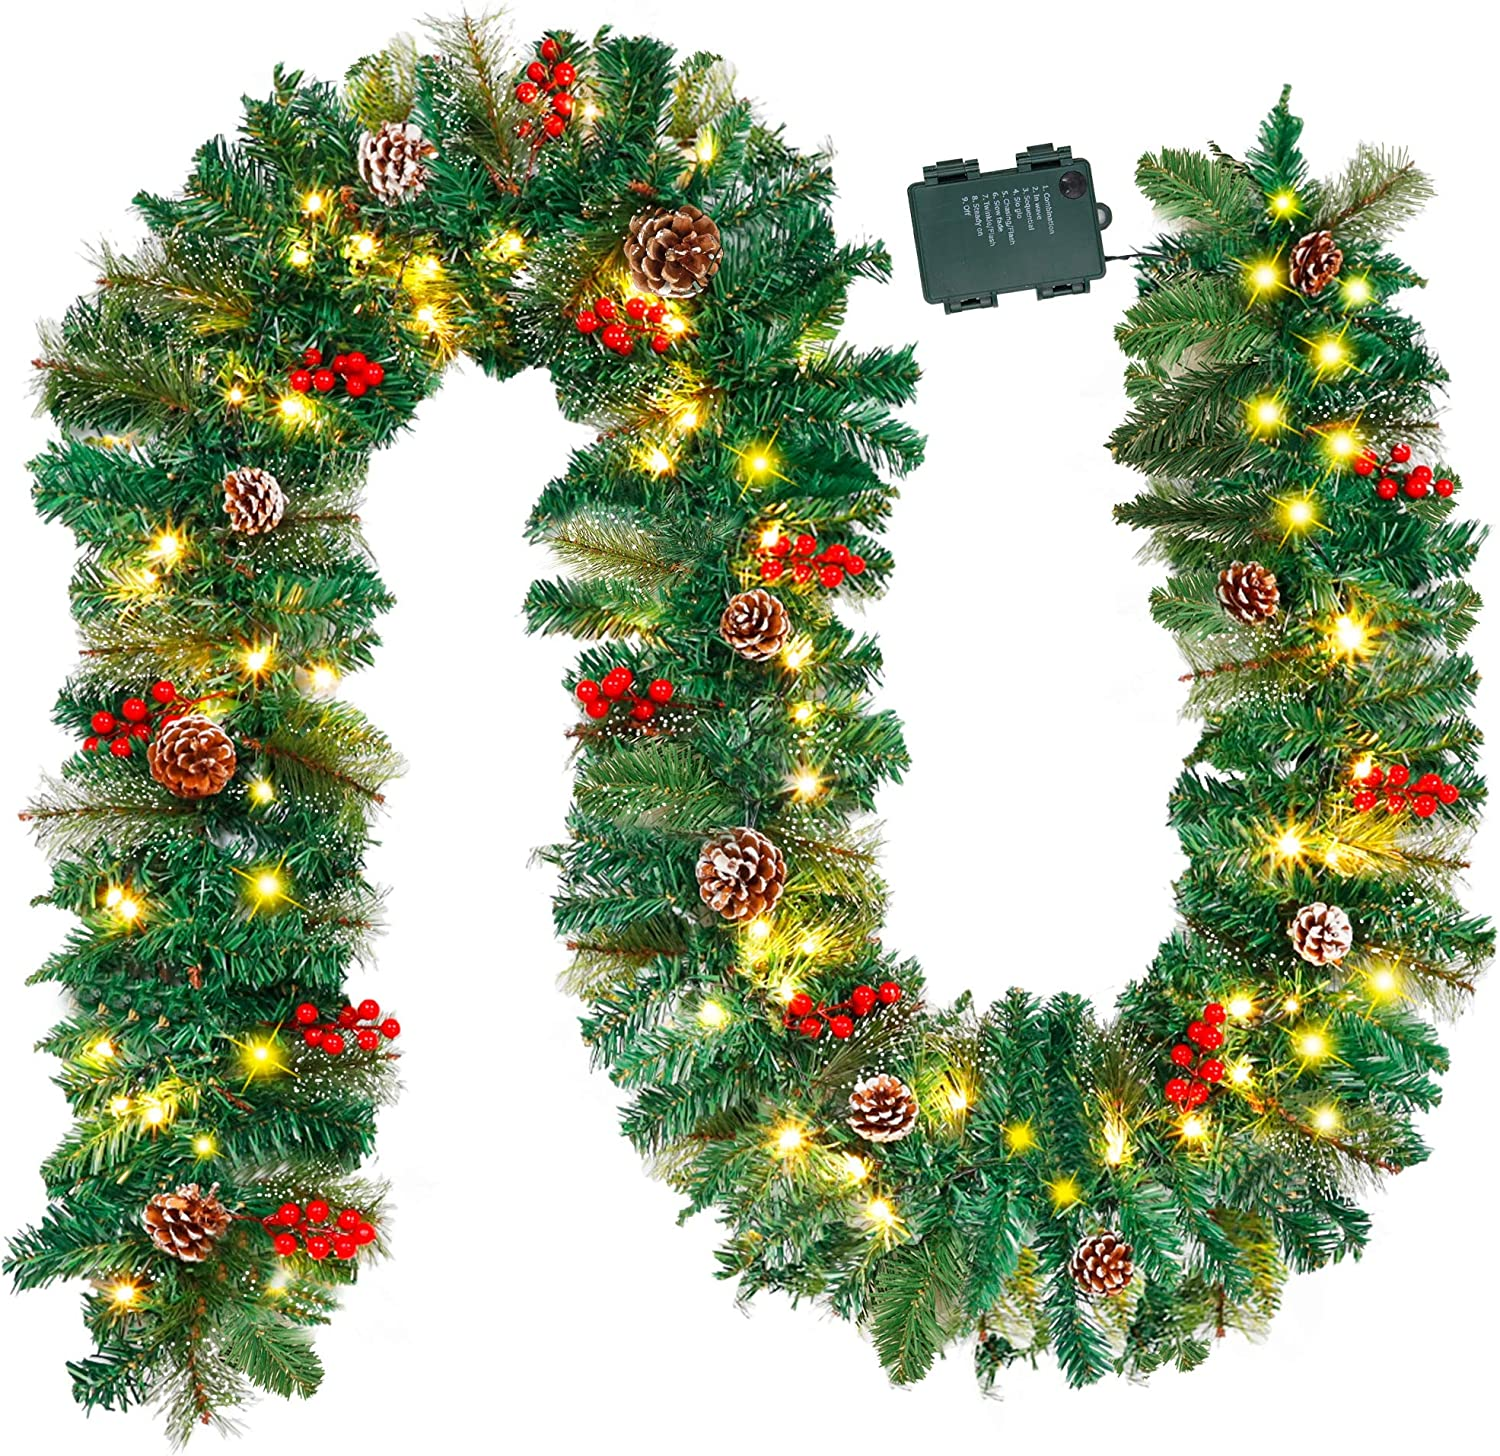 Juegoal 9FT Christmas Garland, Pre-lit Artificial Garland Decorations Greenery with Flowers, Berries Cones Balls Ornament, Warm White 40 LED Lights, Indoor/Outdoor, Flocked with Mixed Decor